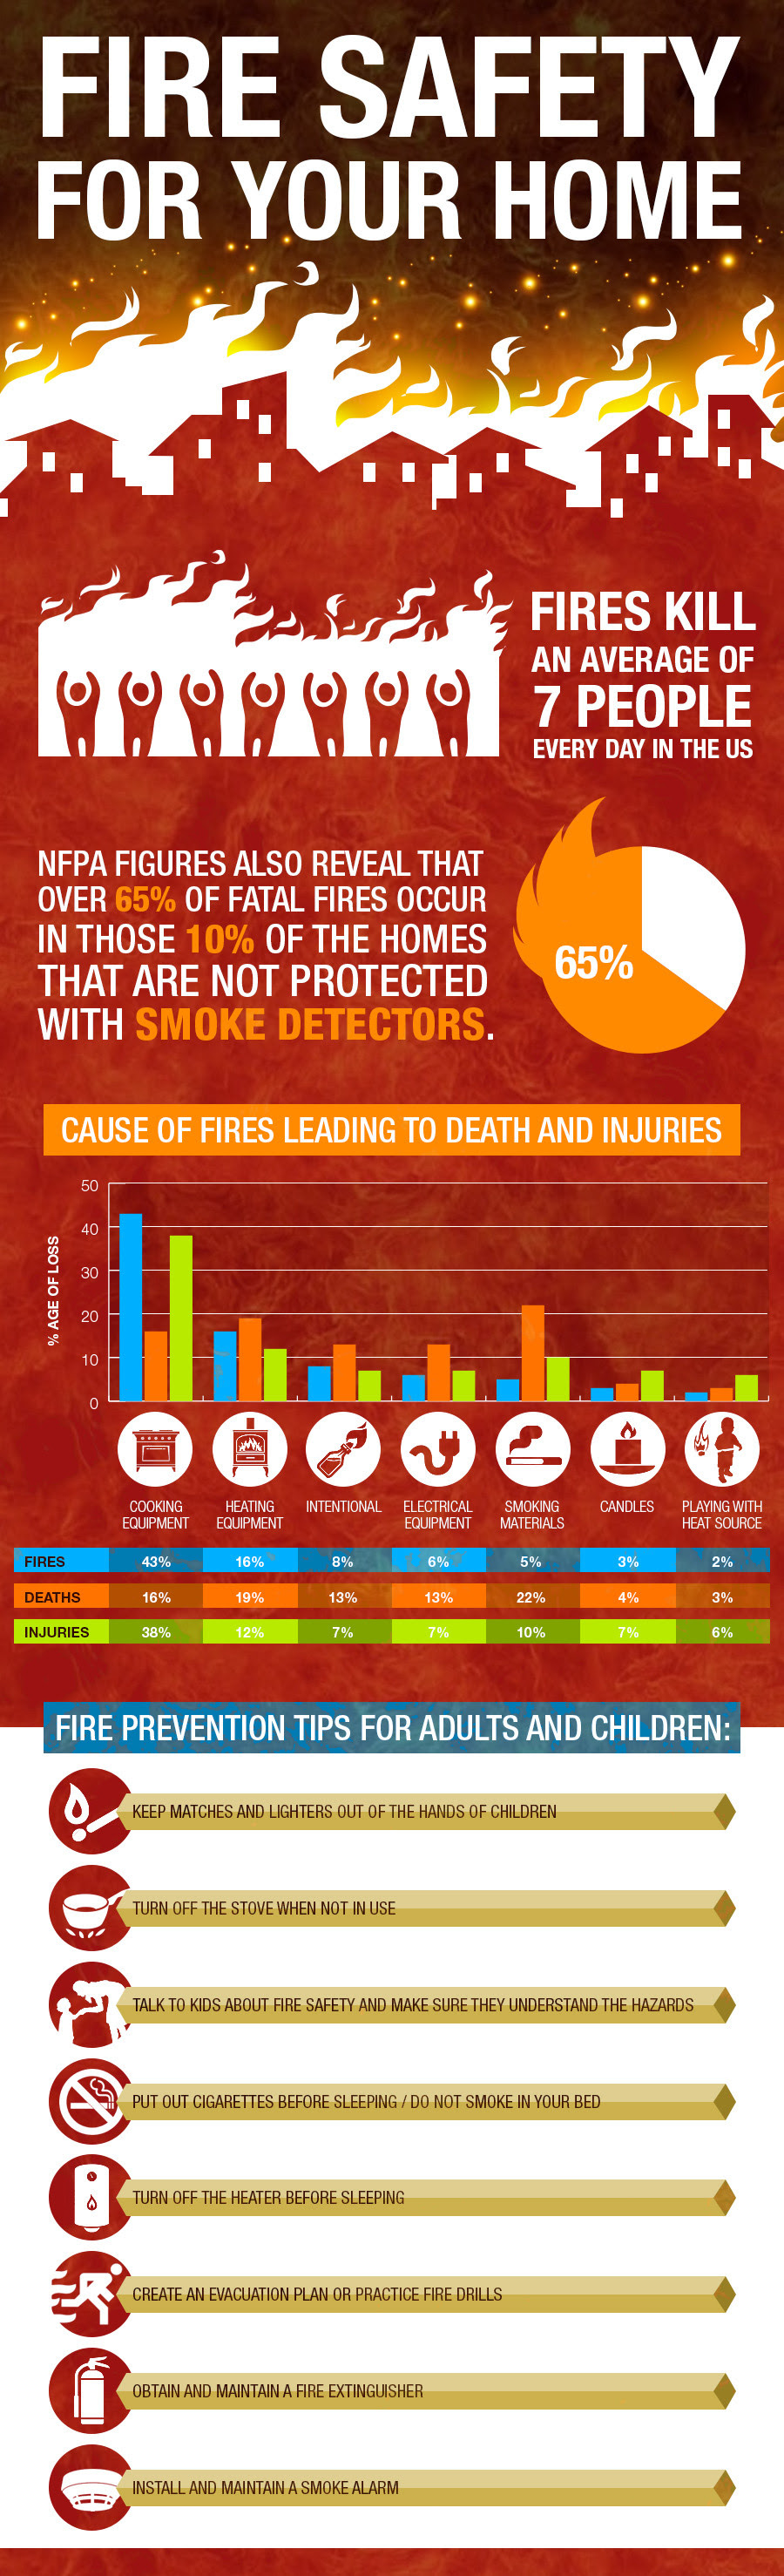 8 ways to keep your home fire safe infographic visualistan for Fire prevention tips for home